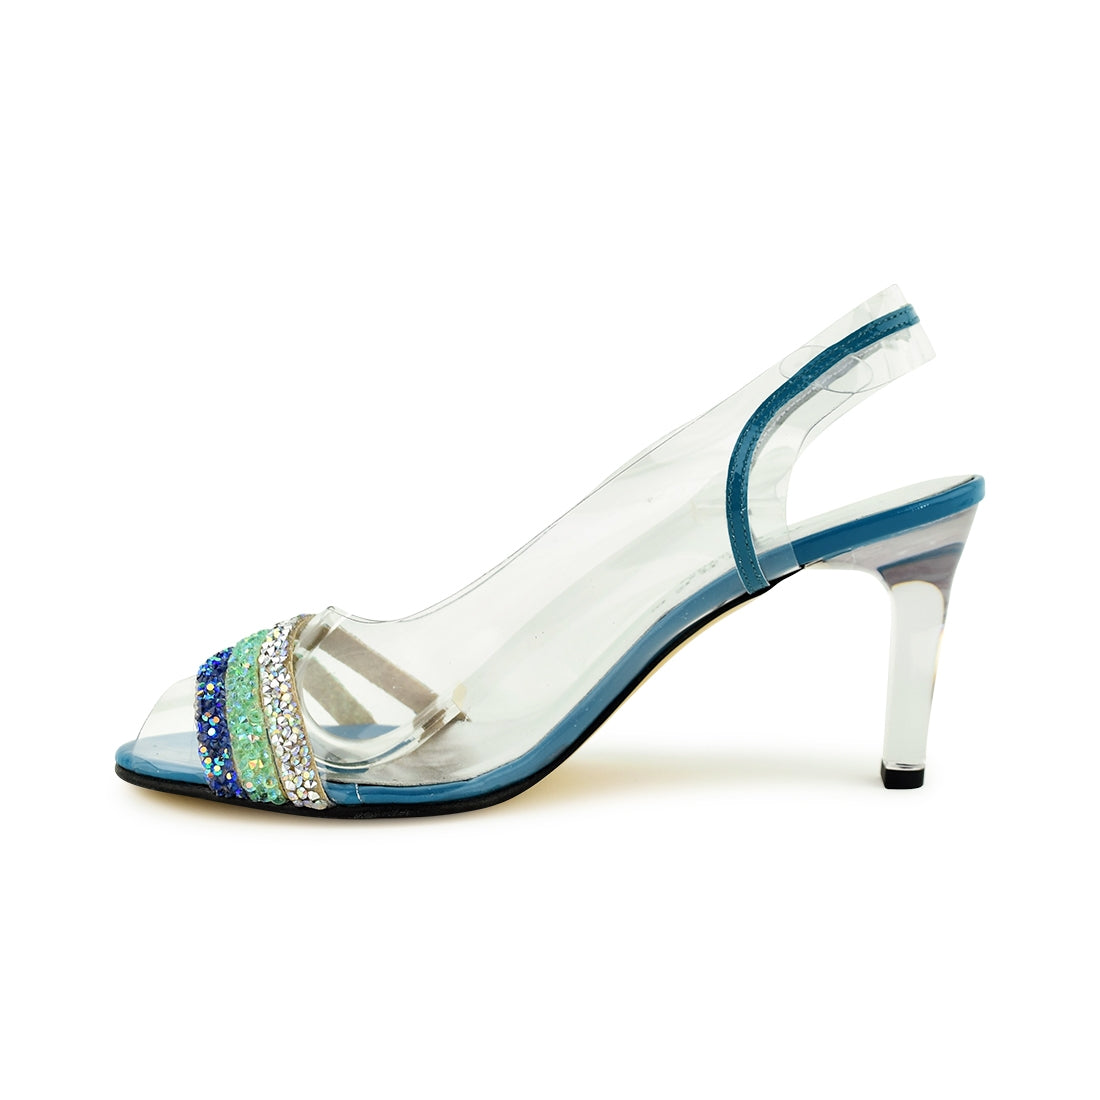 NAPOLIA - Azuree Sling Back Aqua Multi